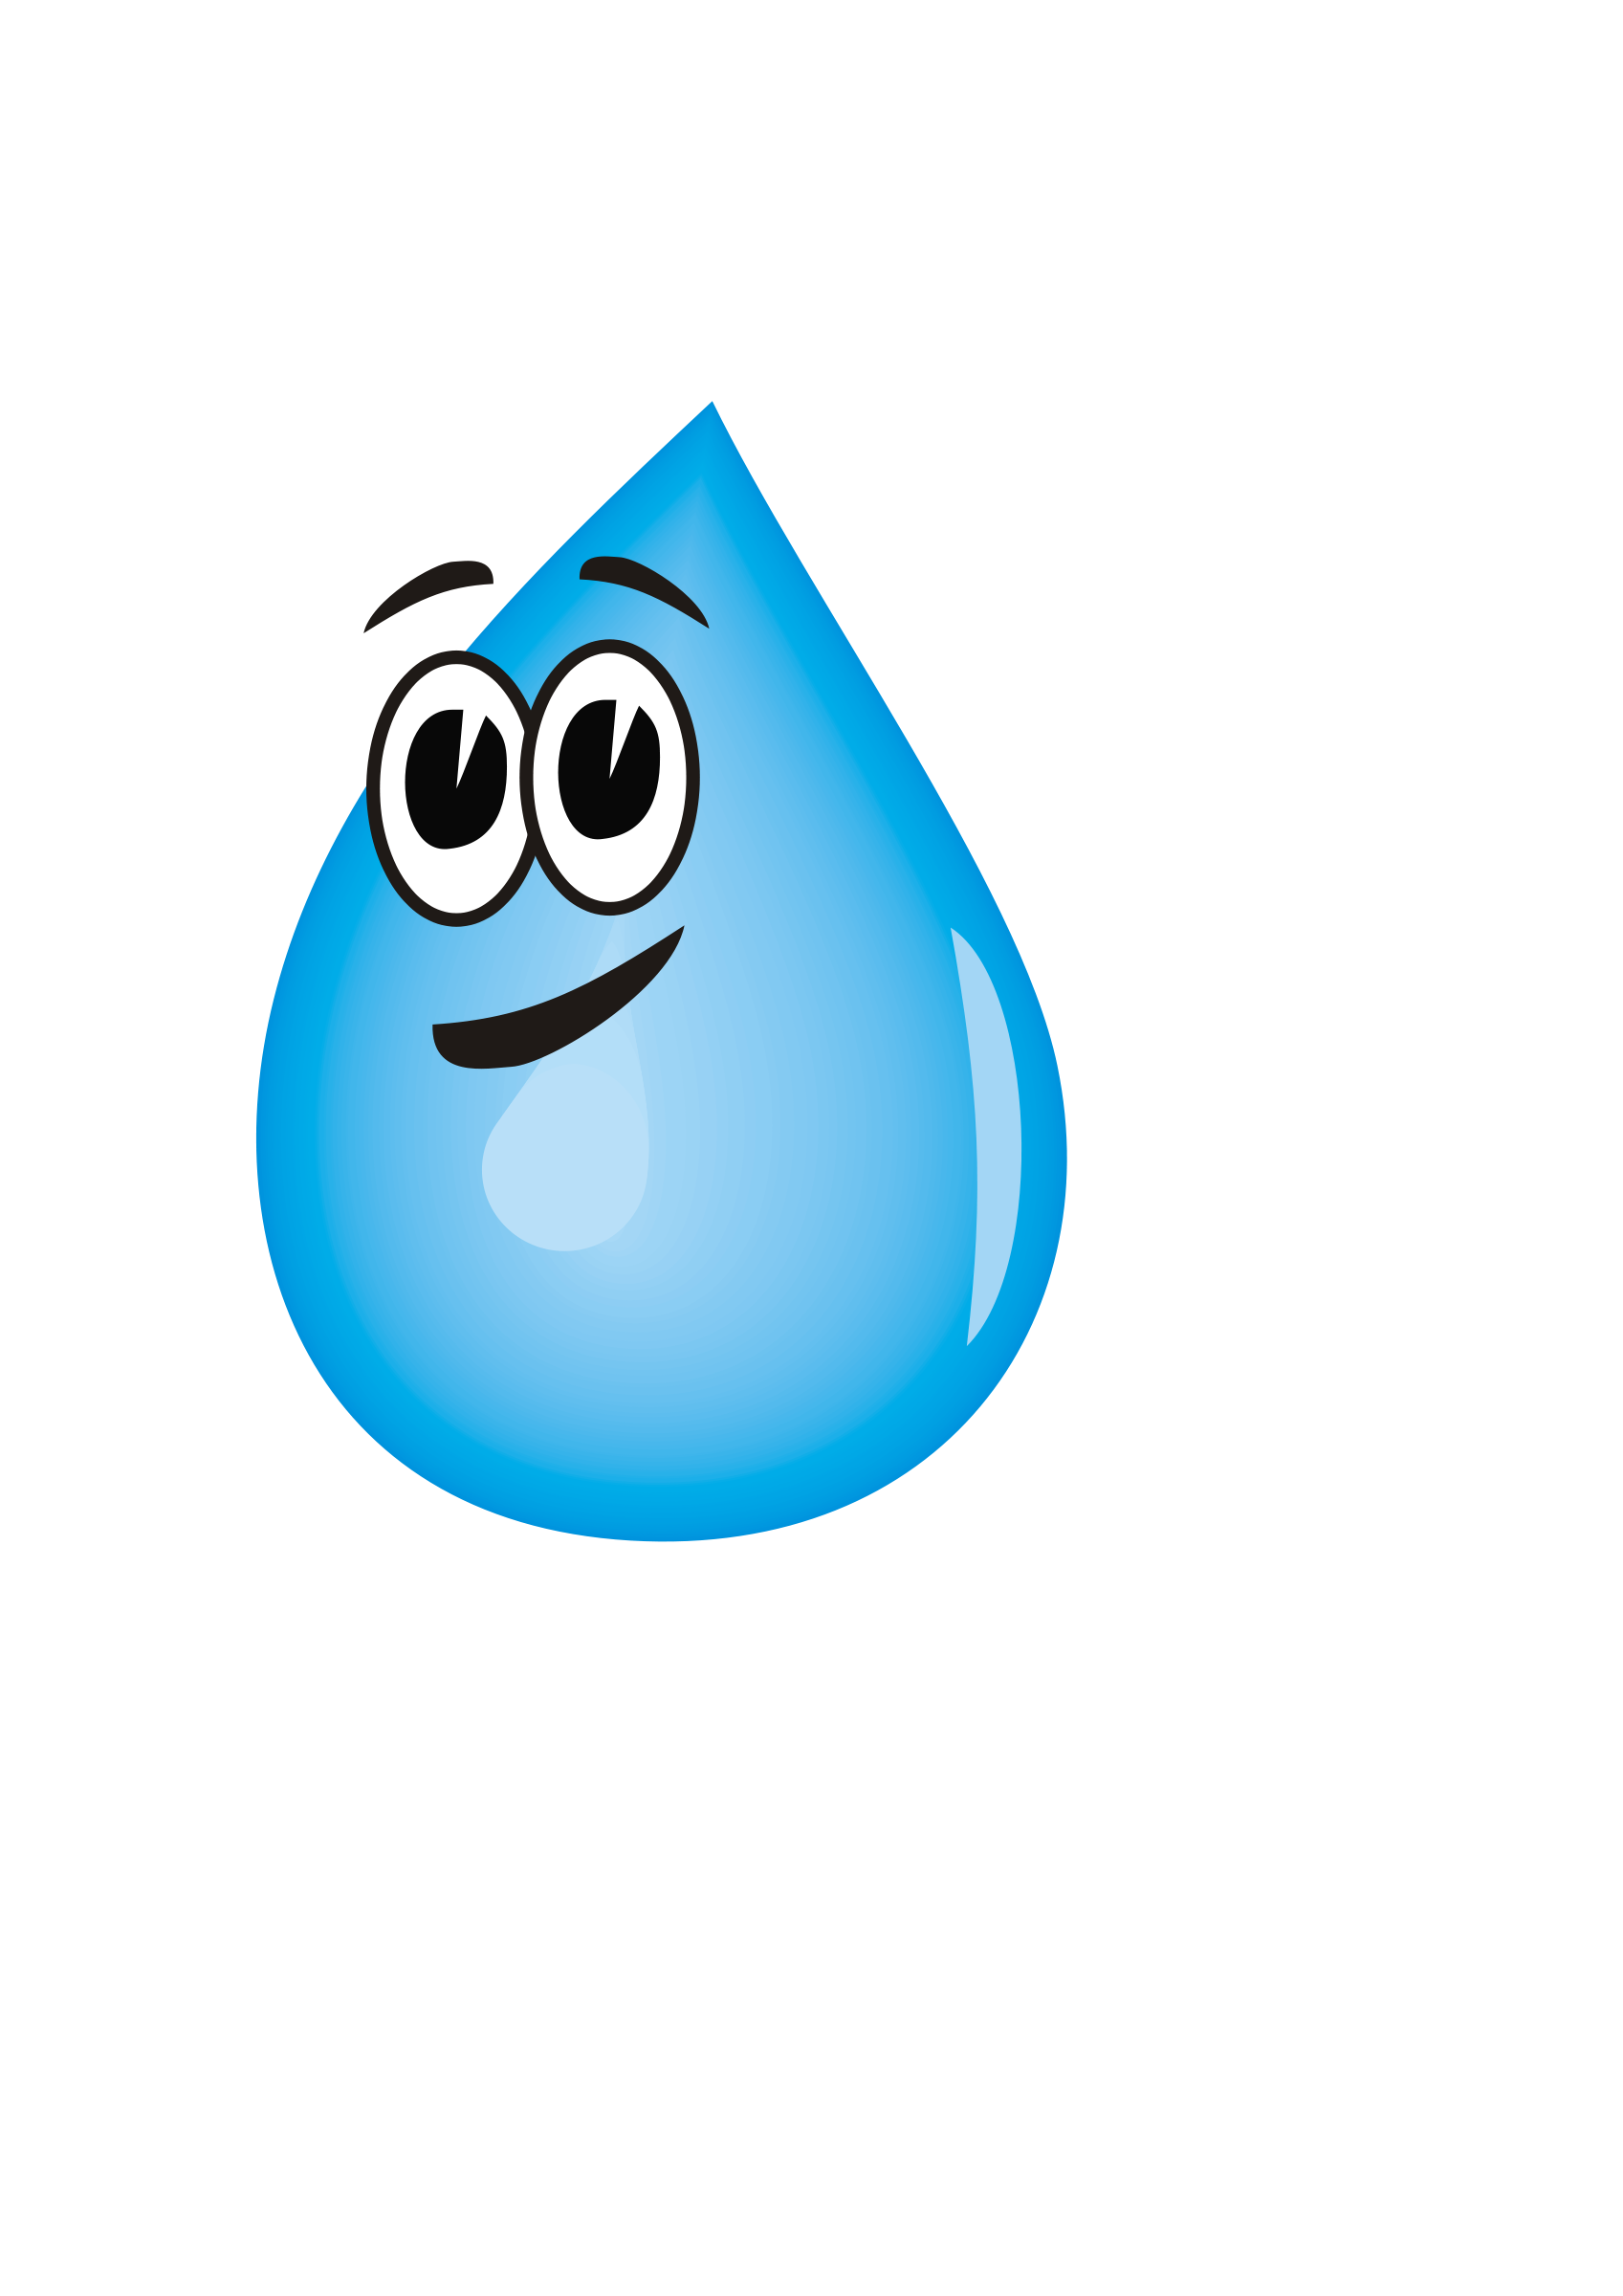 Raindrop clipart cloudy with. Blue water animated